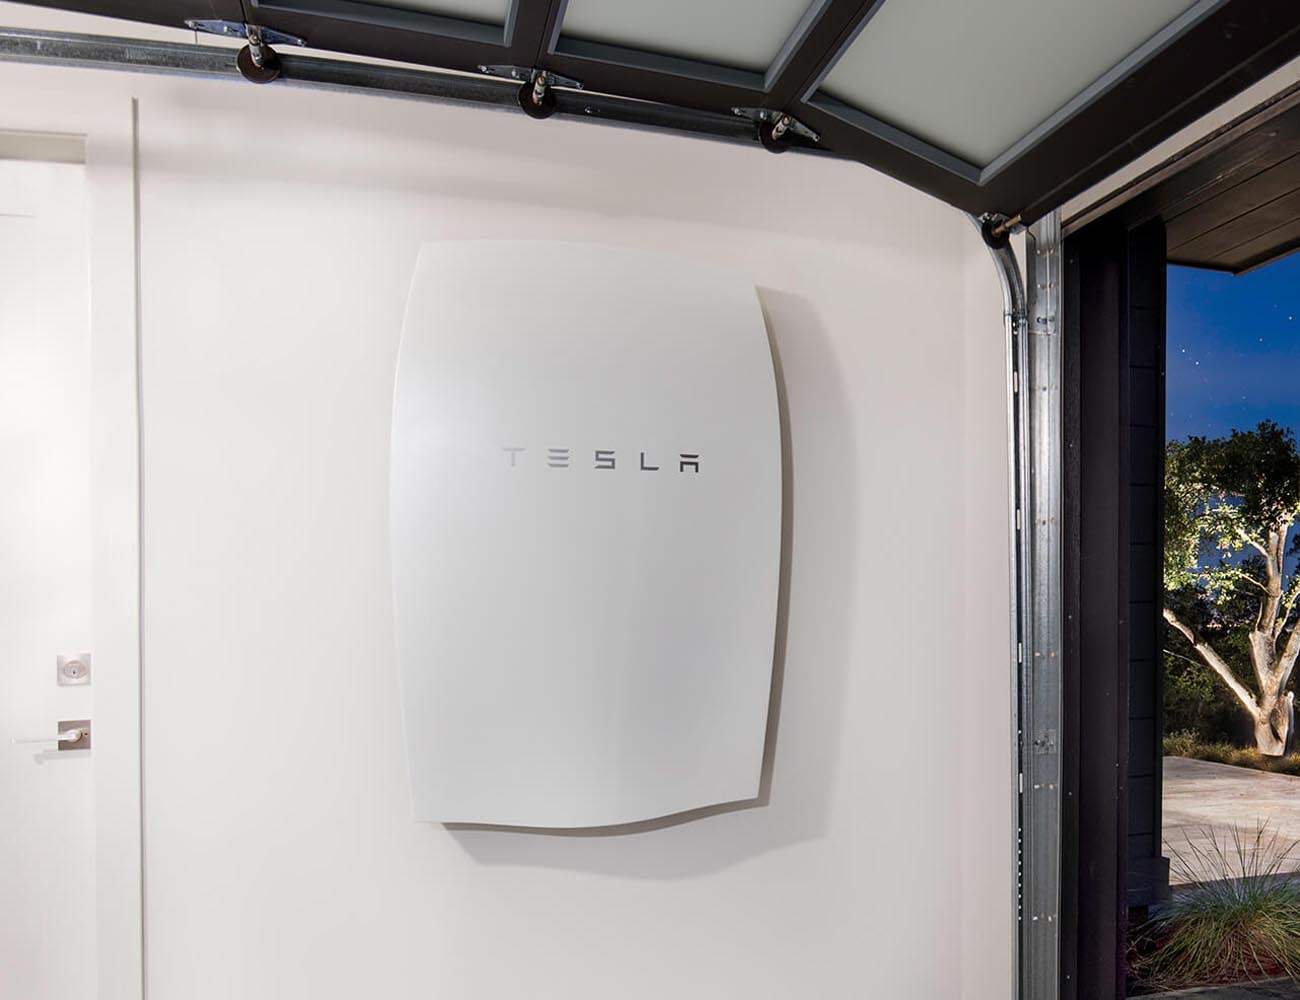 Tesla+Powerwall+Home+Battery